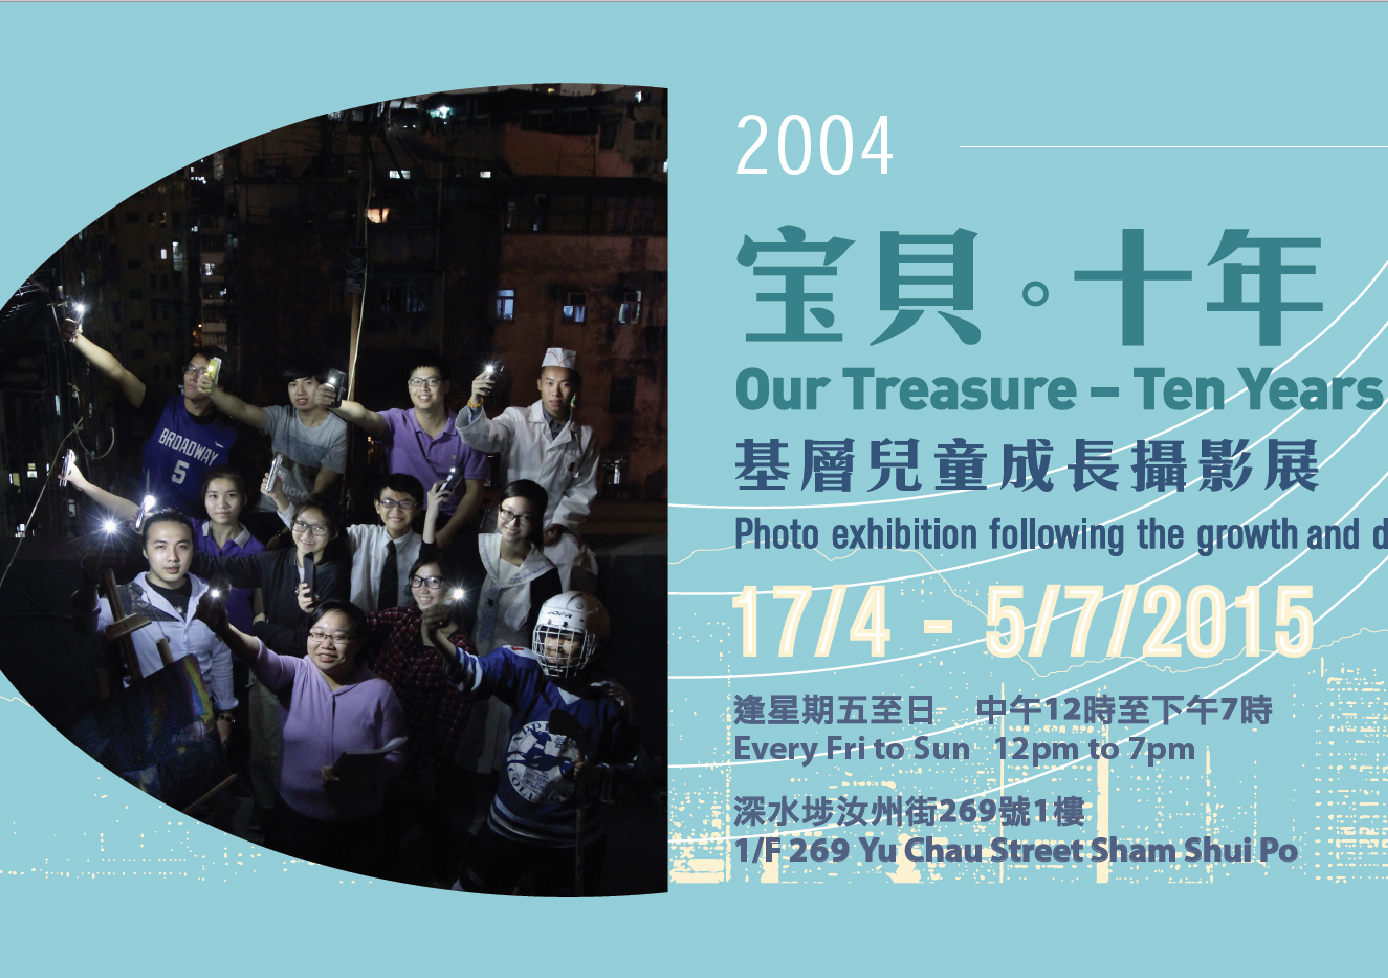 Our Treasure – 10 years later